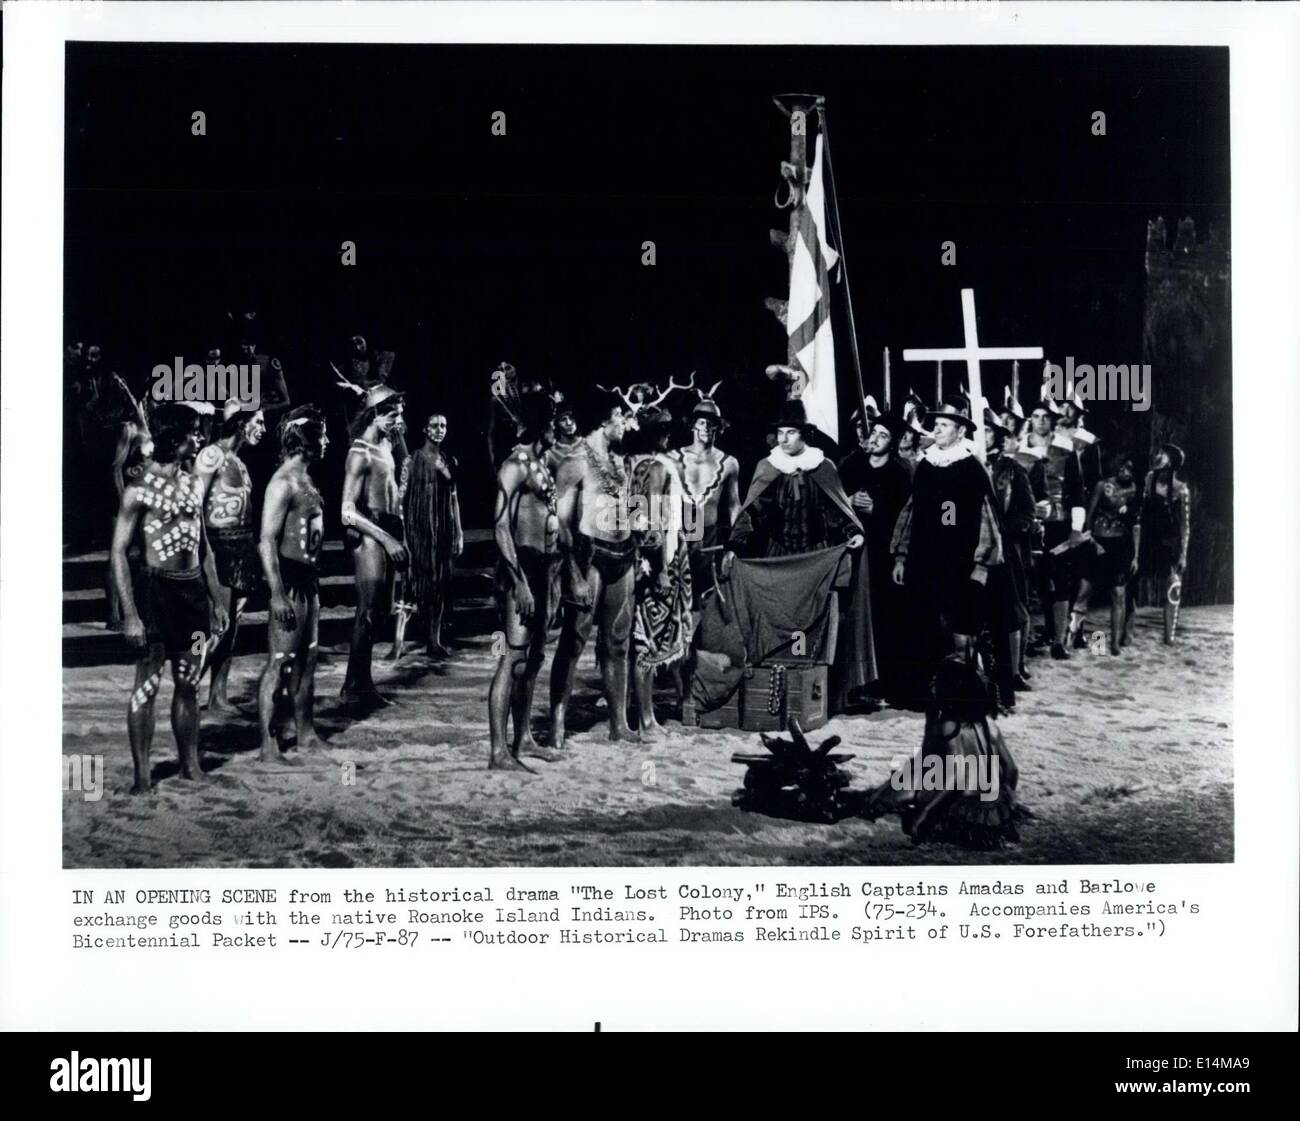 Apr. 05, 2012 - In An Opening Scene from the historical drama '' The Lost Colony,'' English Captains Amadas and Stock Photo